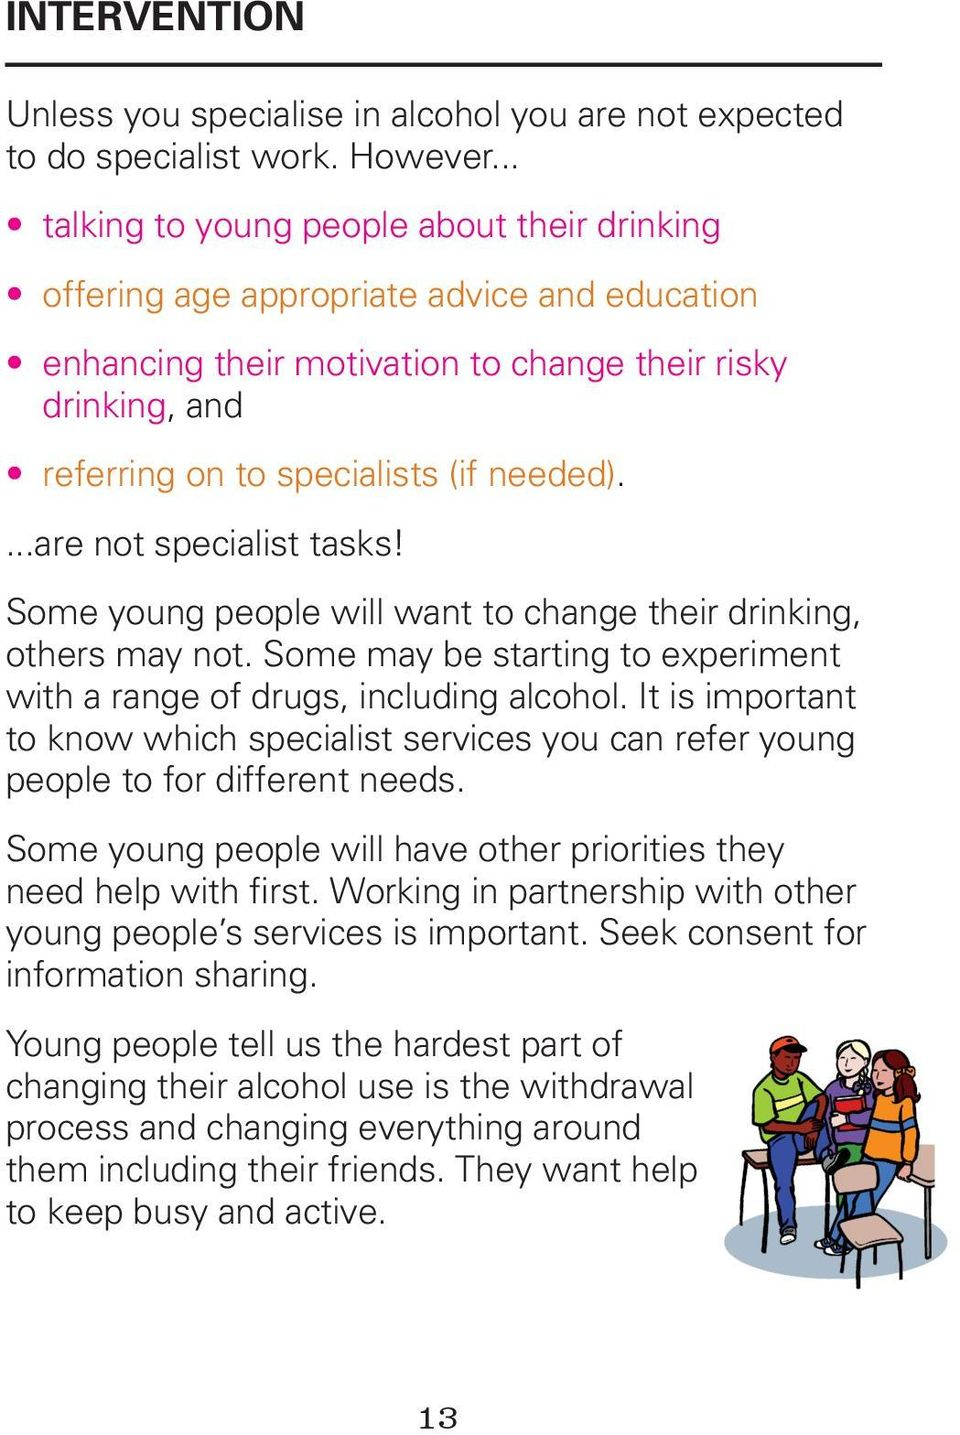 ...are not specialist tasks! Some young people will want to change their drinking, others may not. Some may be starting to experiment with a range of drugs, including alcohol.